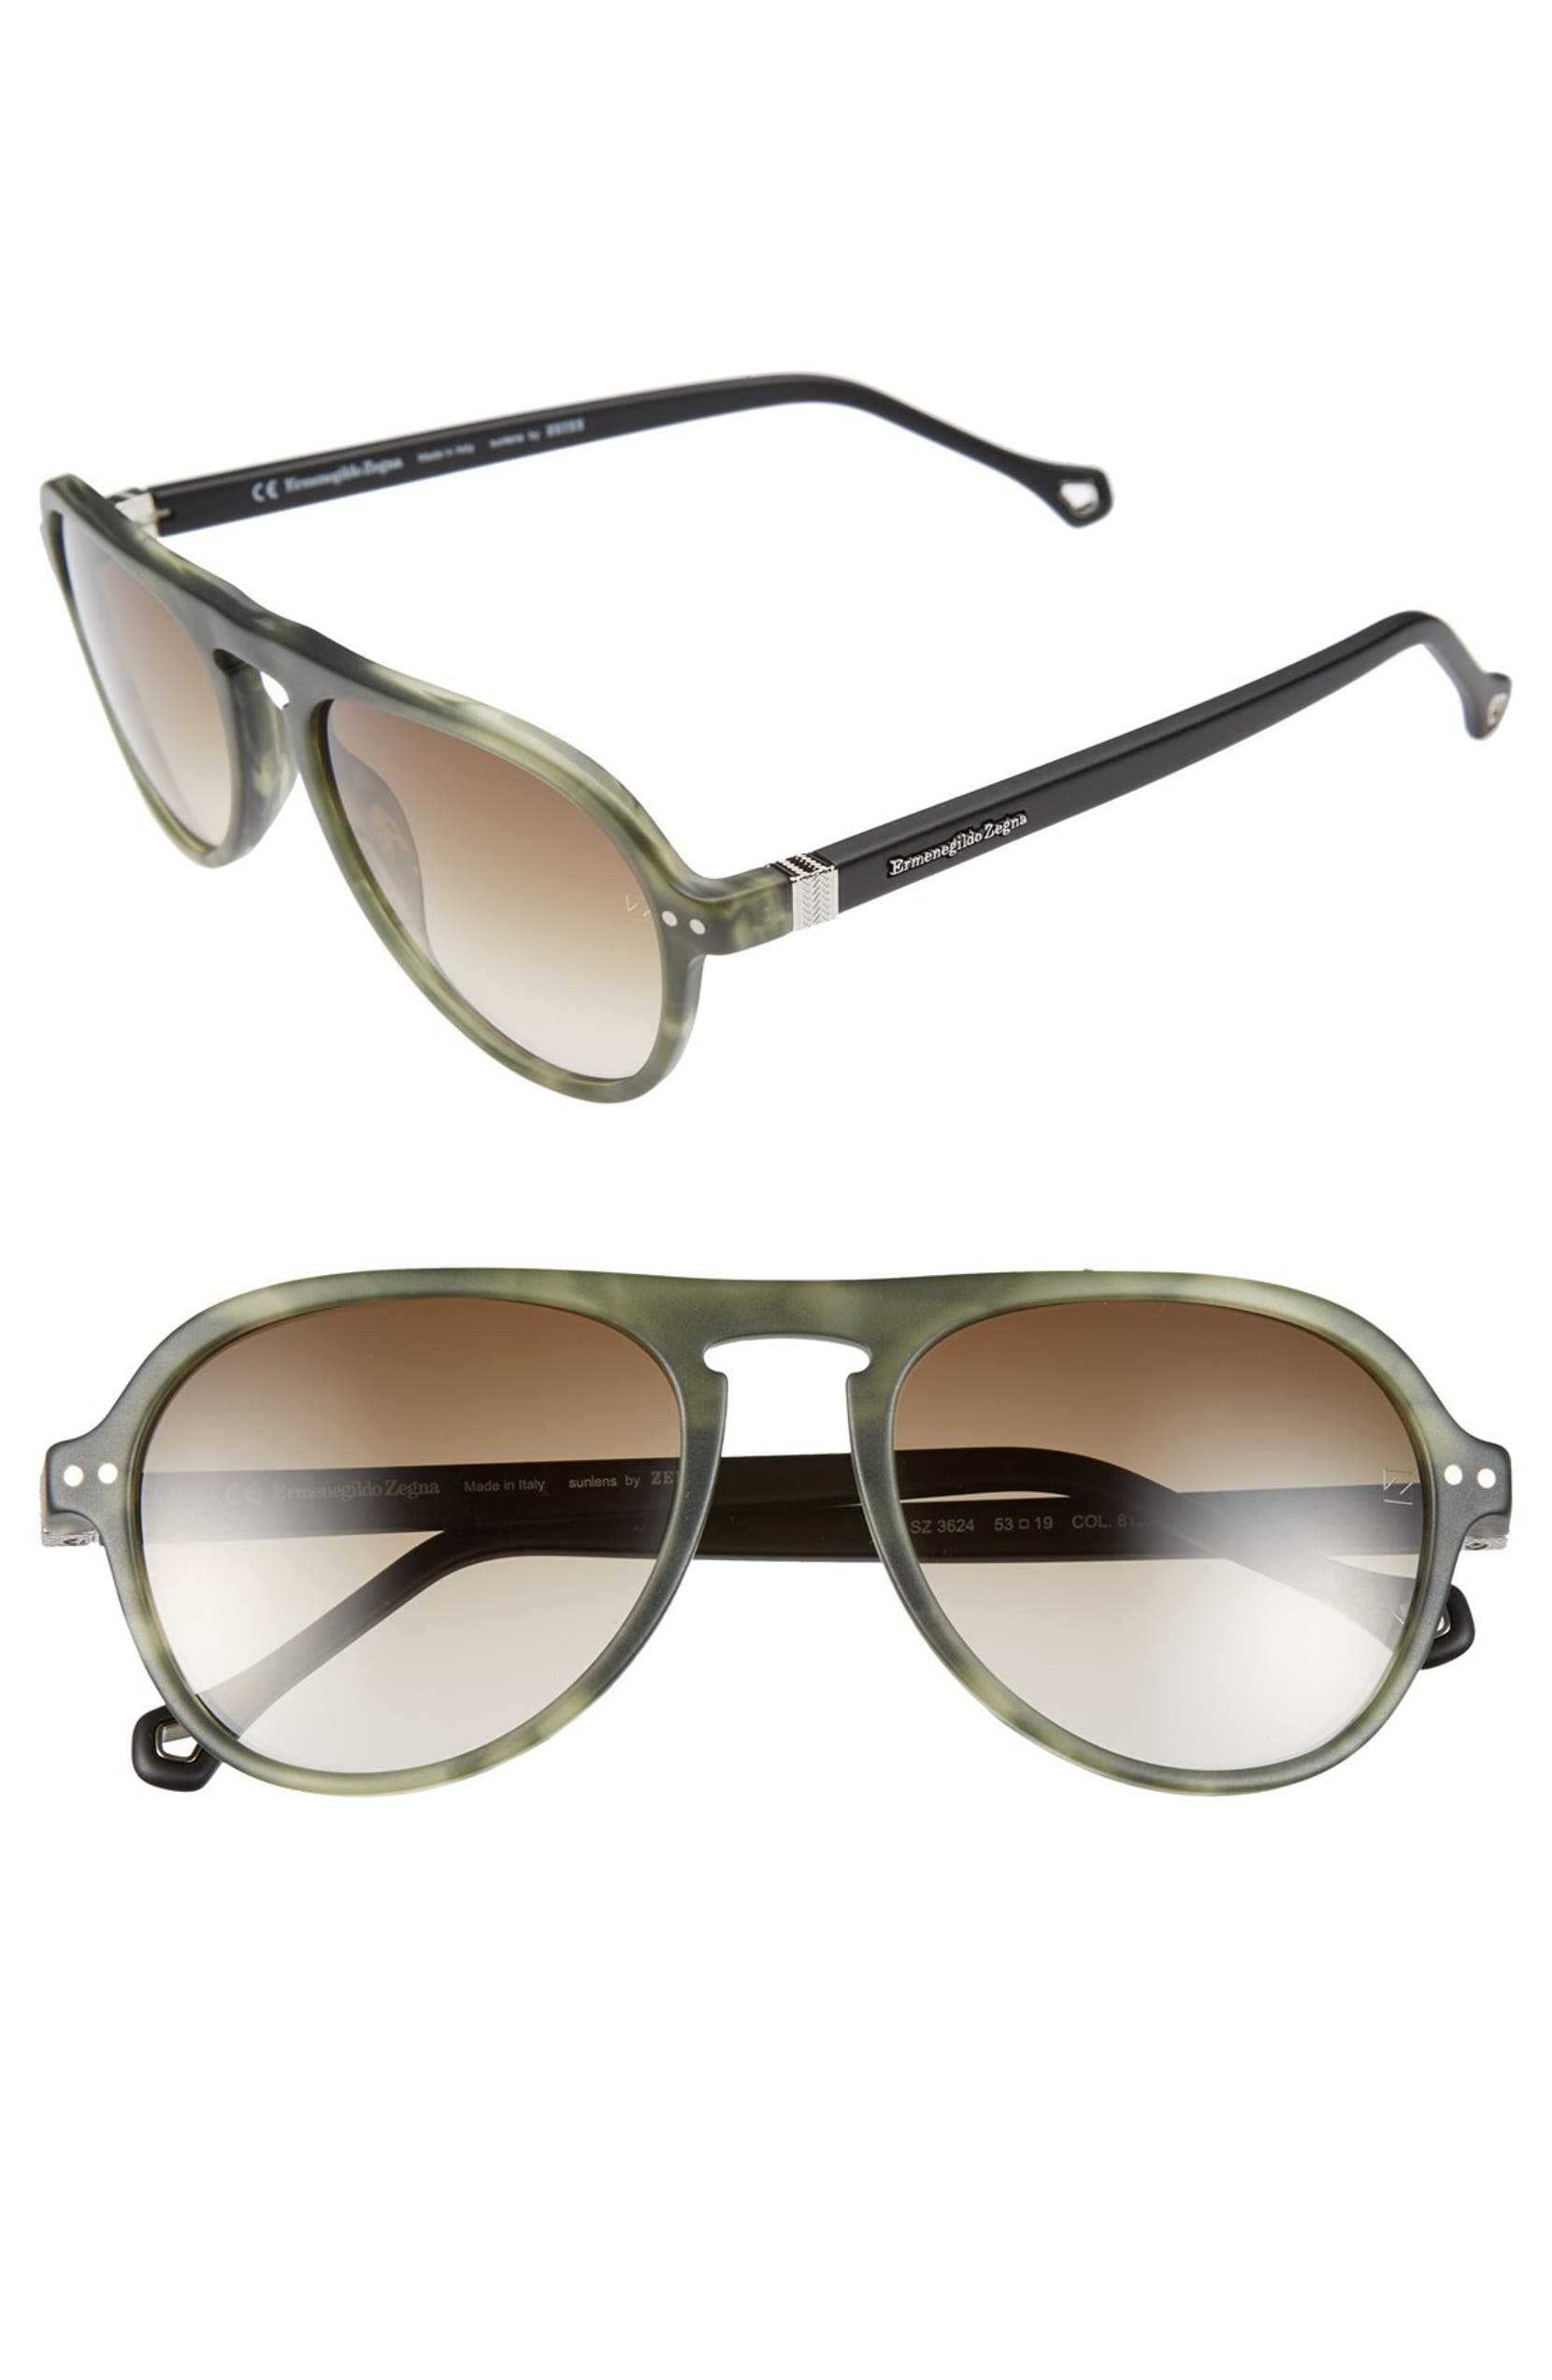 f8c54742a3 Ermenegildo Zegna 53mm Aviator Sunglasses